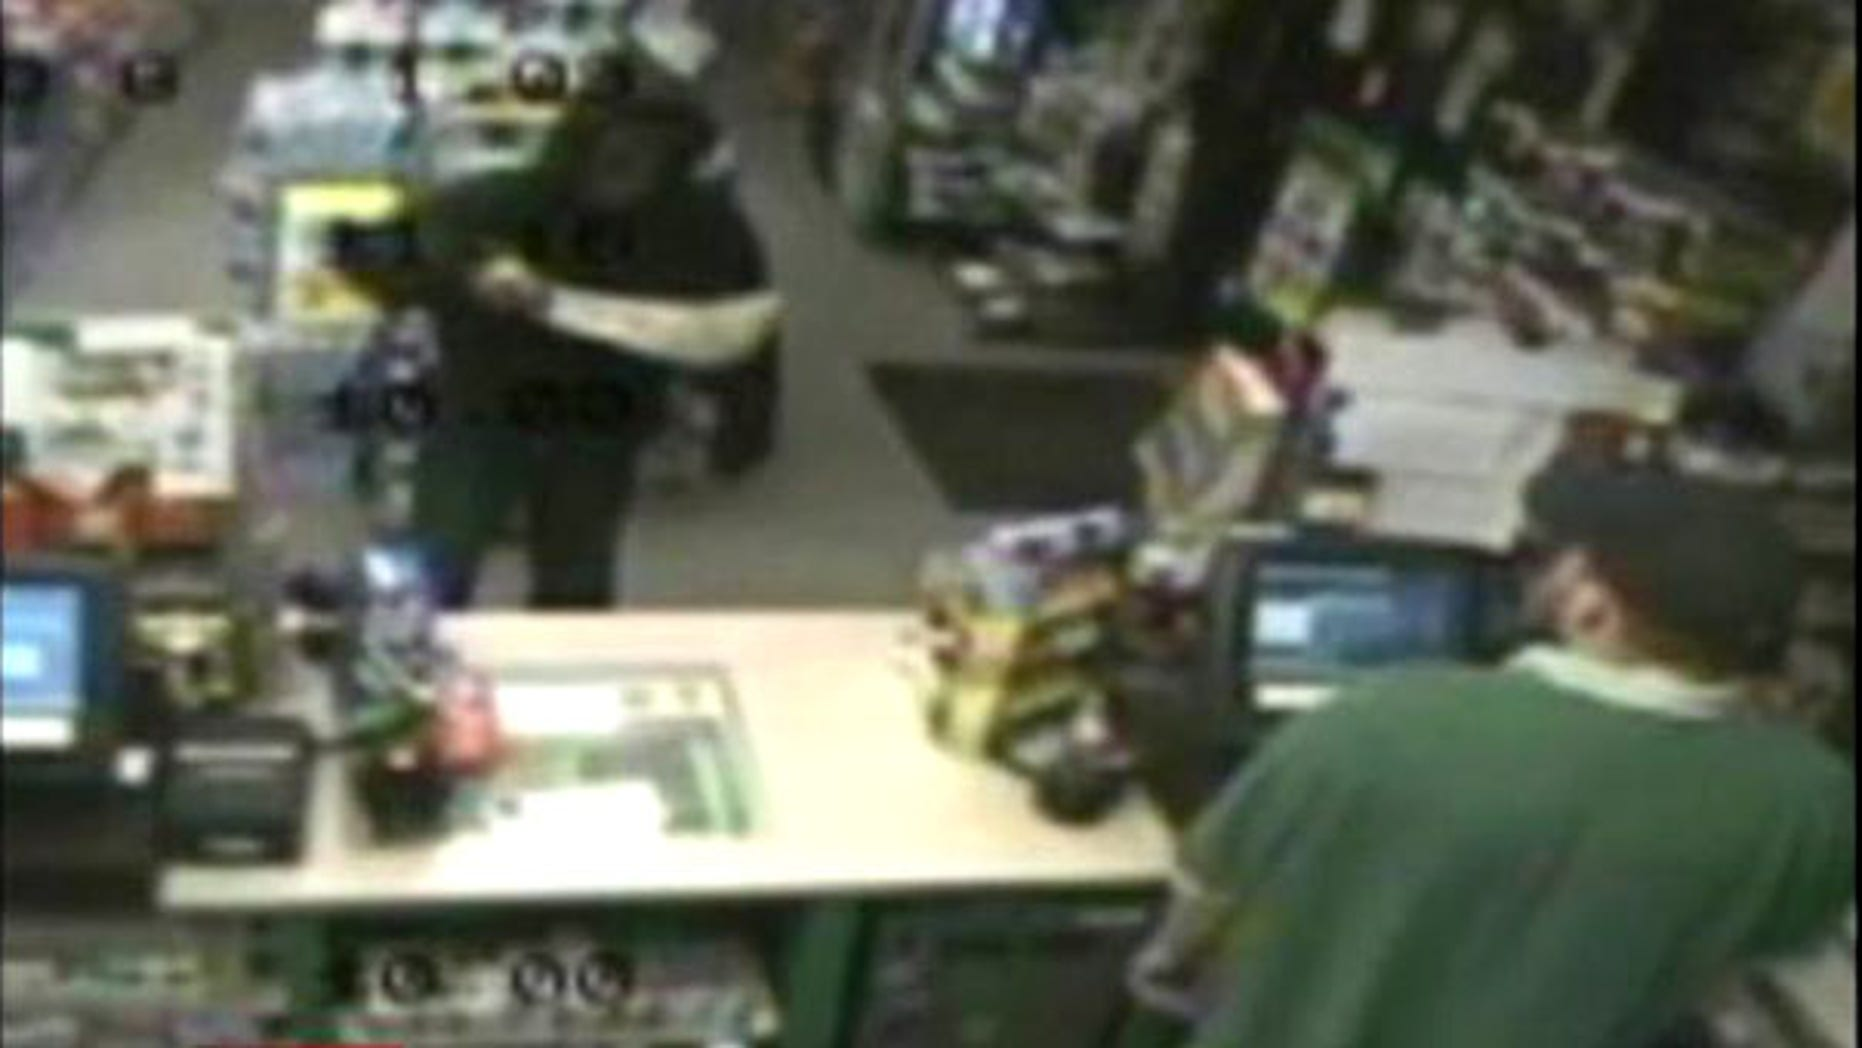 Aug. 3: An unidentified man wielding a machete is seen robbing a gas station in Raynham, Mass. Police suspect the thief also robbed a pizza delivery man with the massive blade.